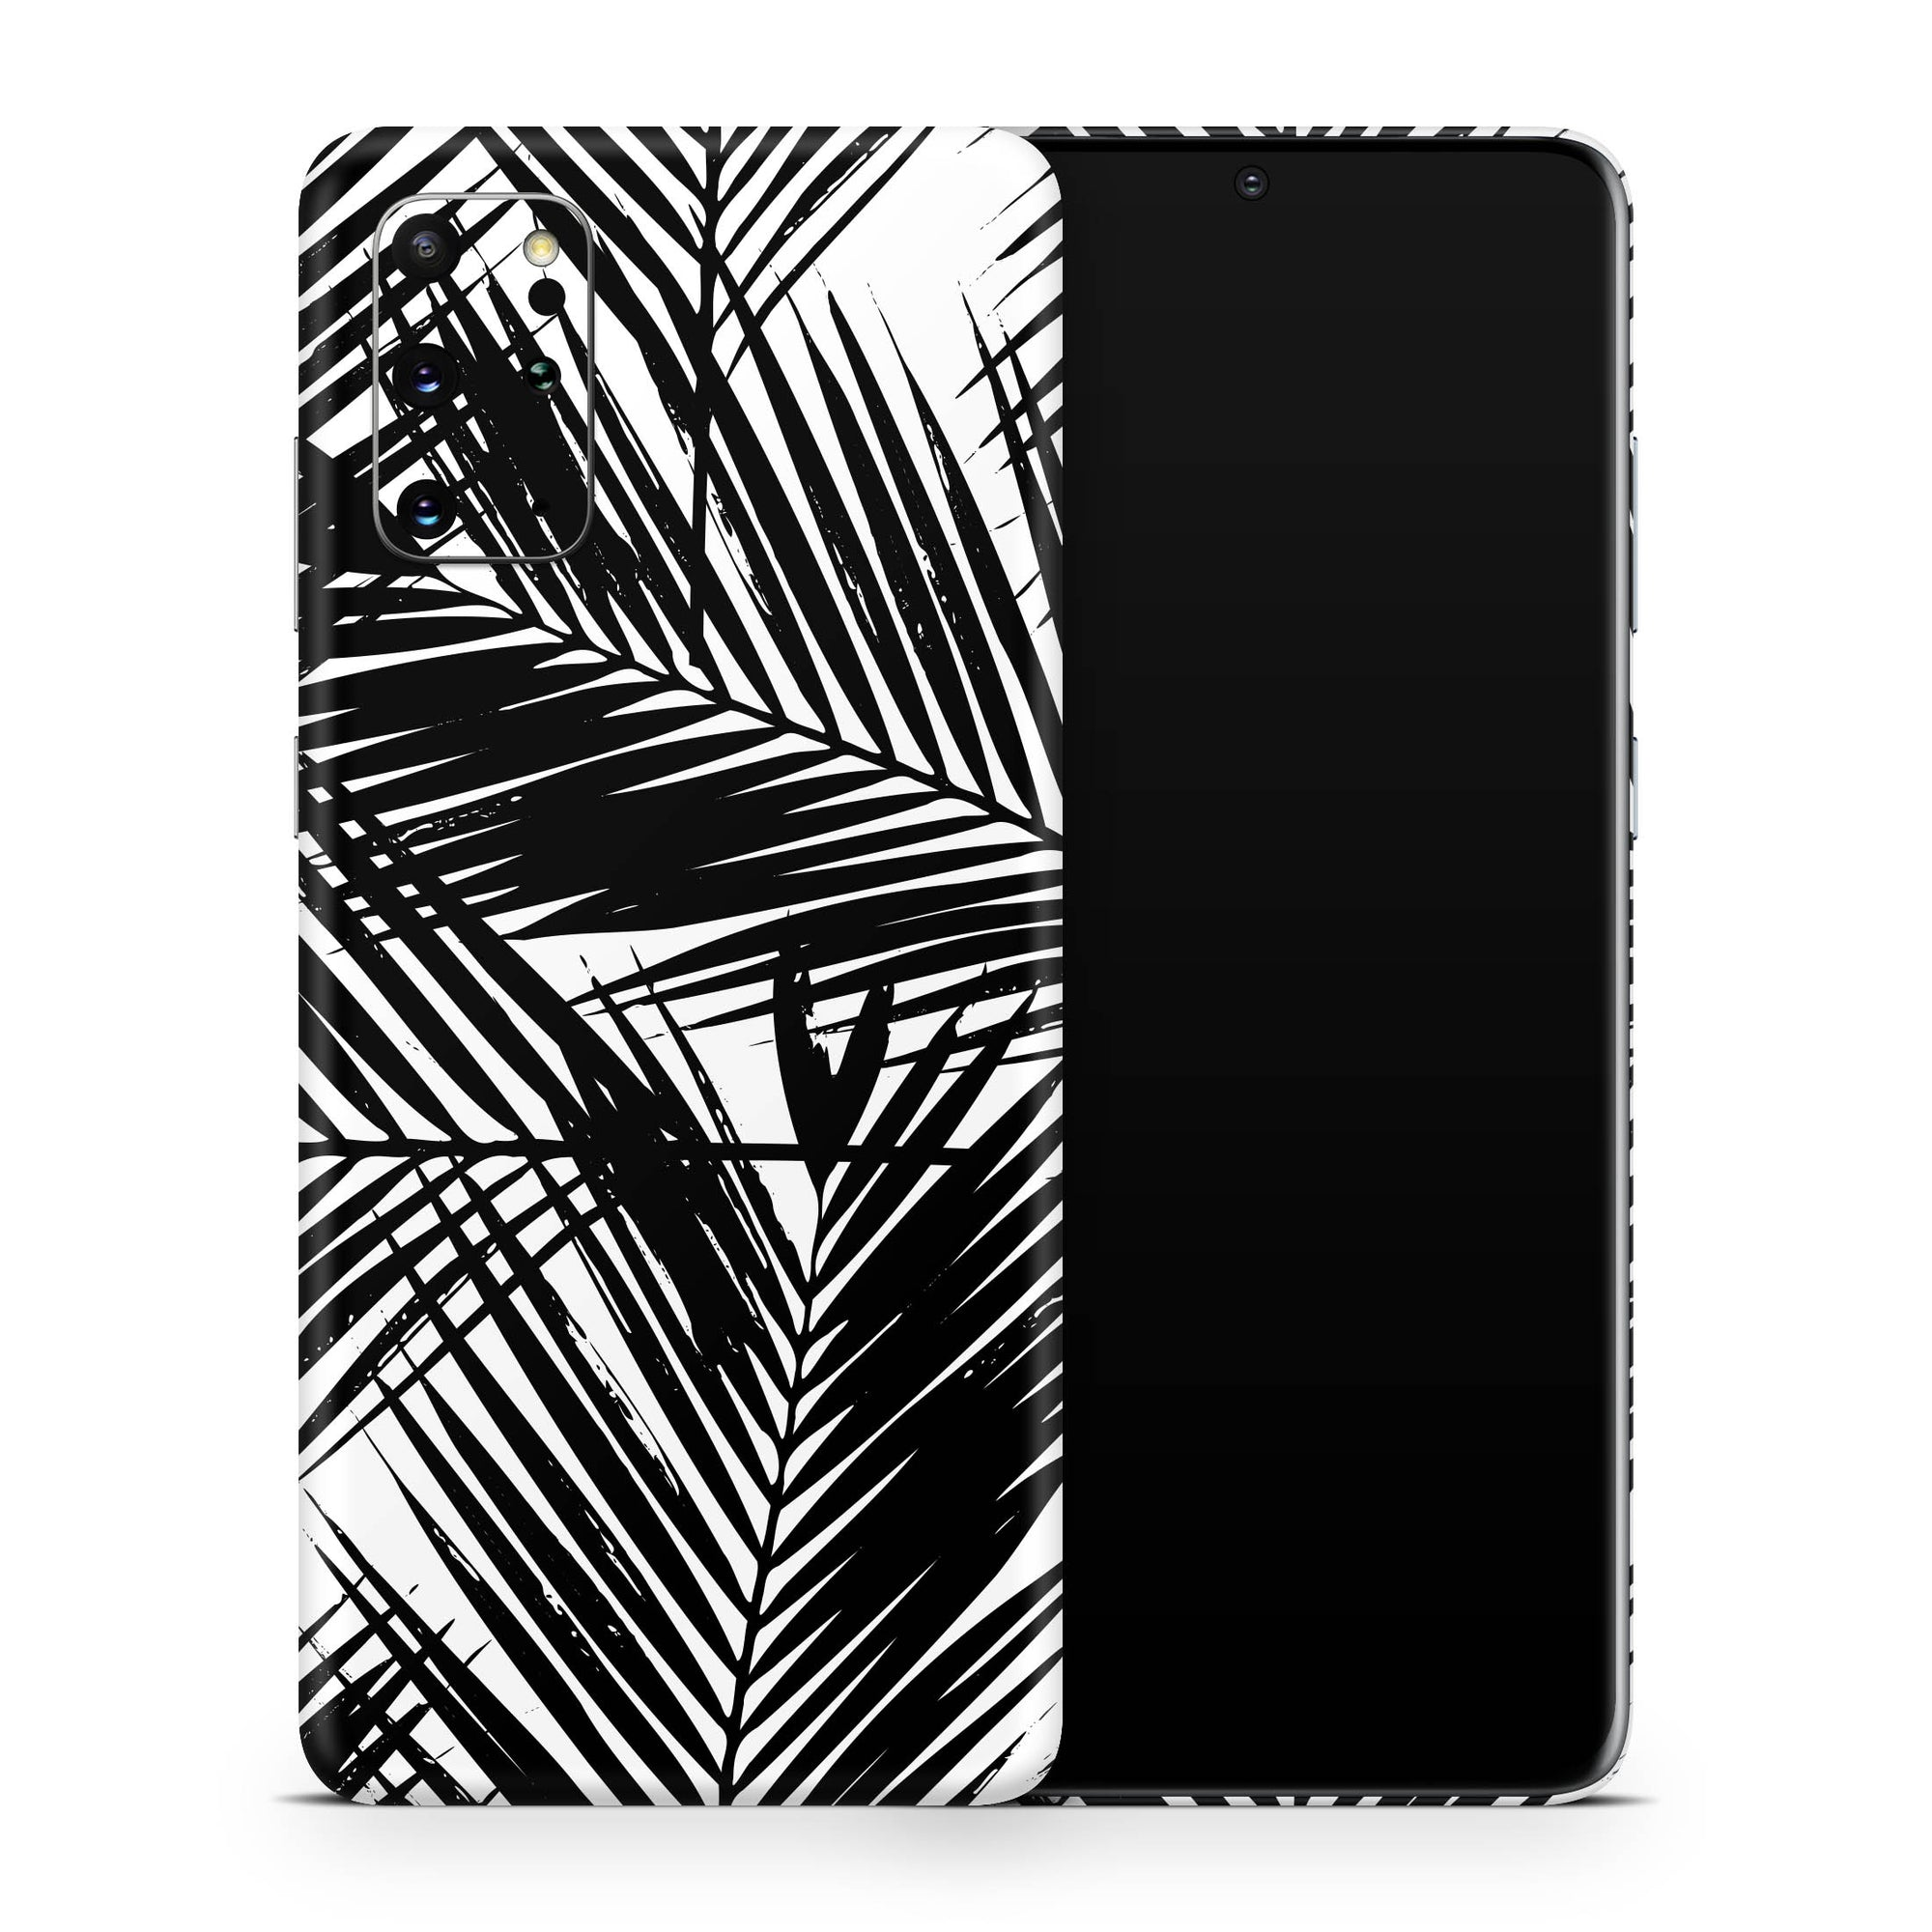 Palm Beach Galaxy S20 Plus Skin + Case-Uniqfind